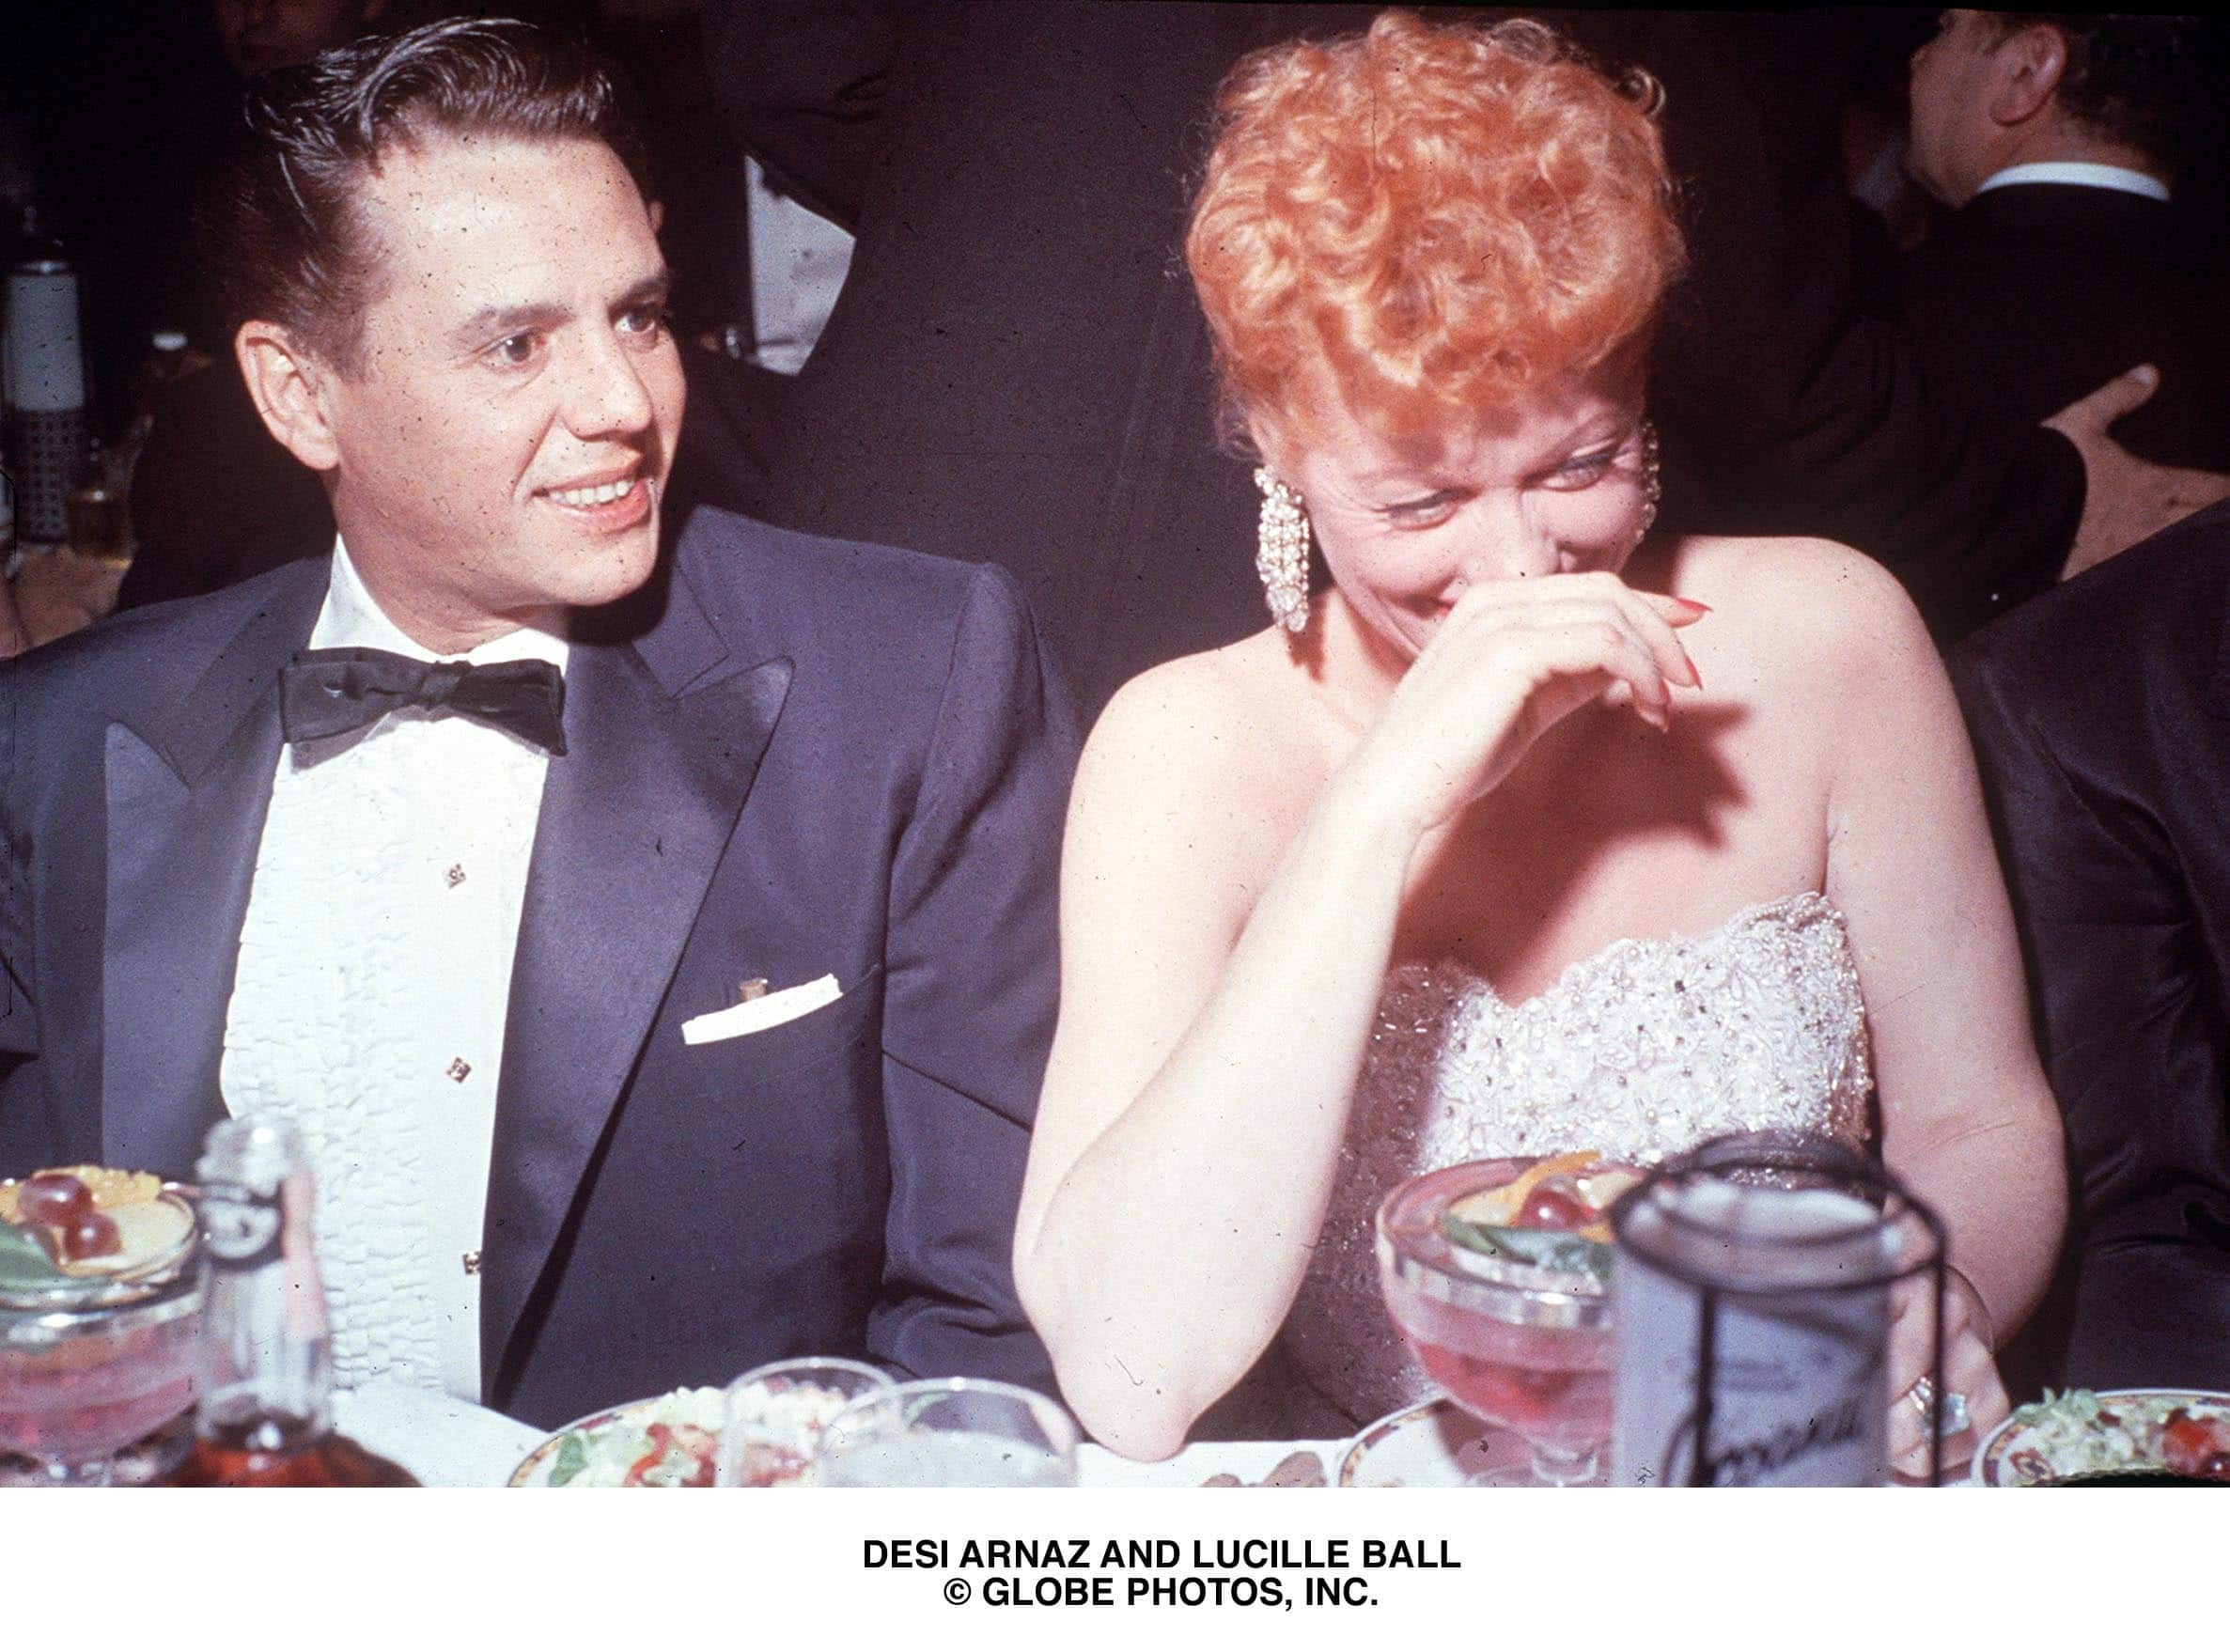 Only Lucille Ball Was Allowed To Mock Desi Arnaz's Accent On The Show